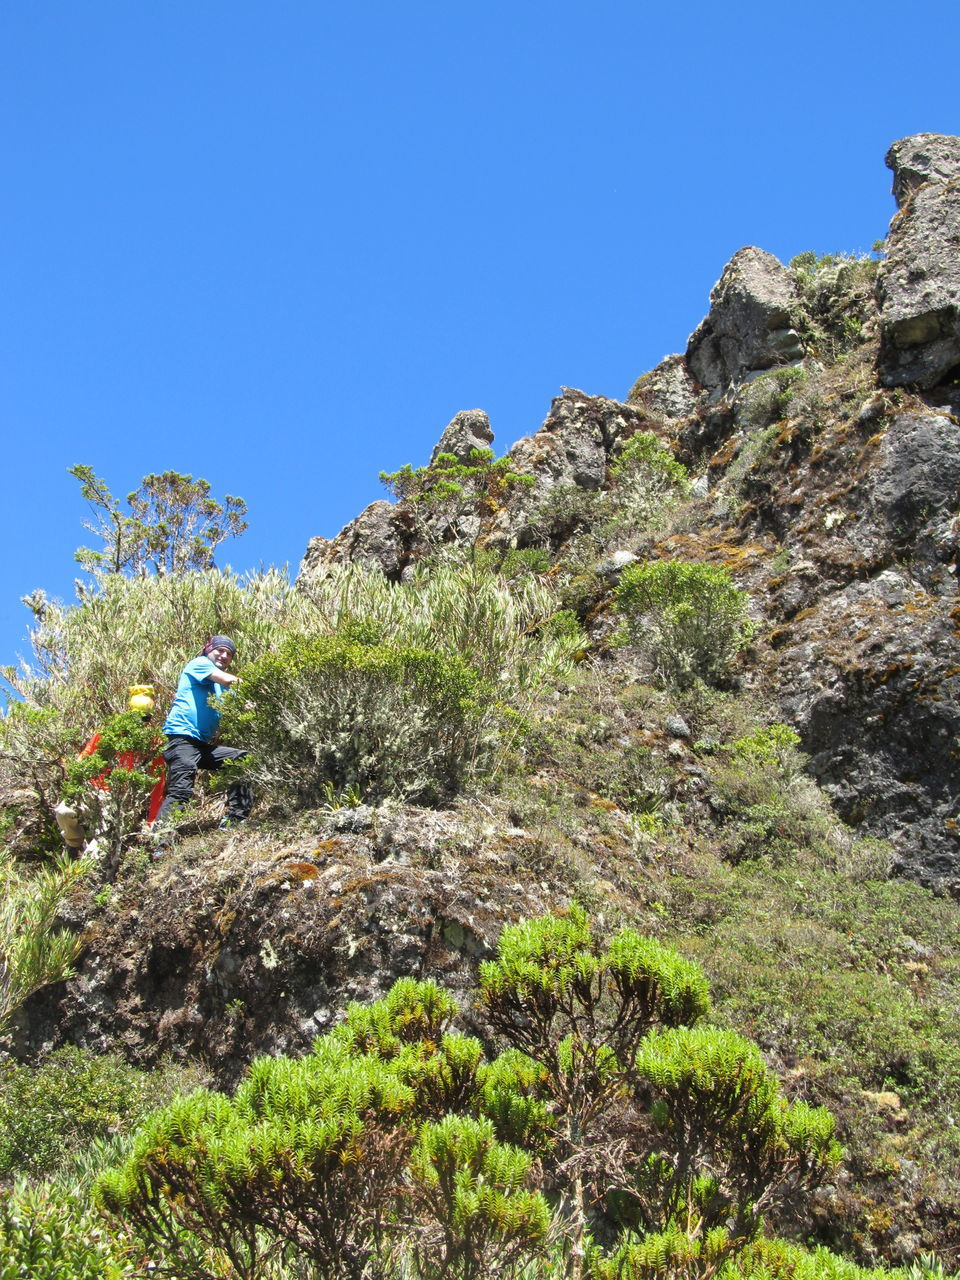 Low Angle View Of Hiker Climbing On Mountain Against Clear Blue Sky